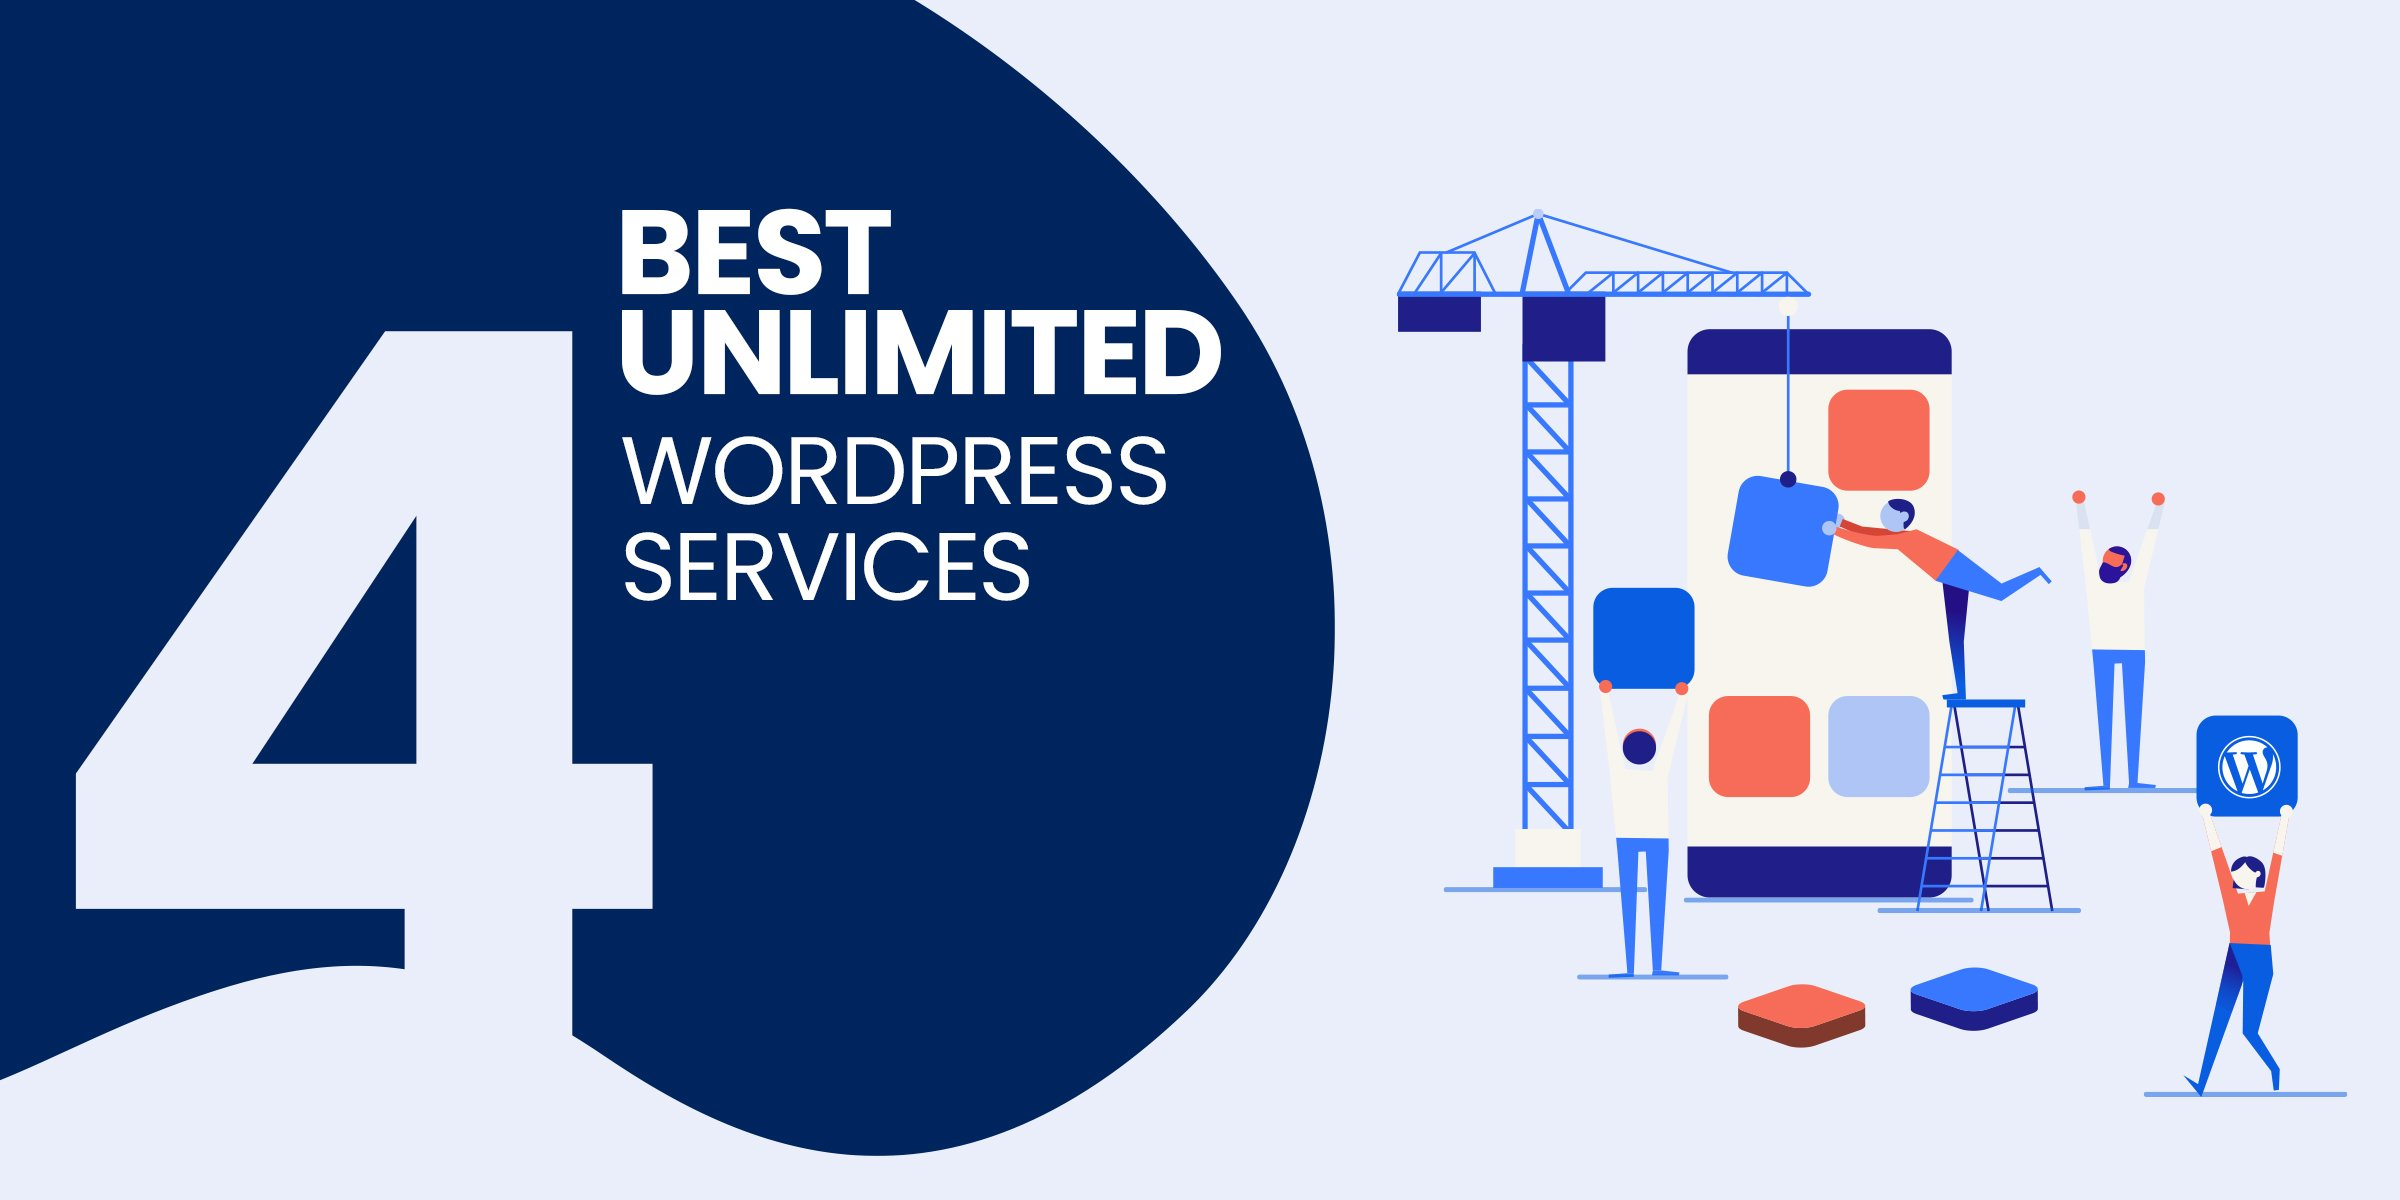 Best Unlimited WordPress Services